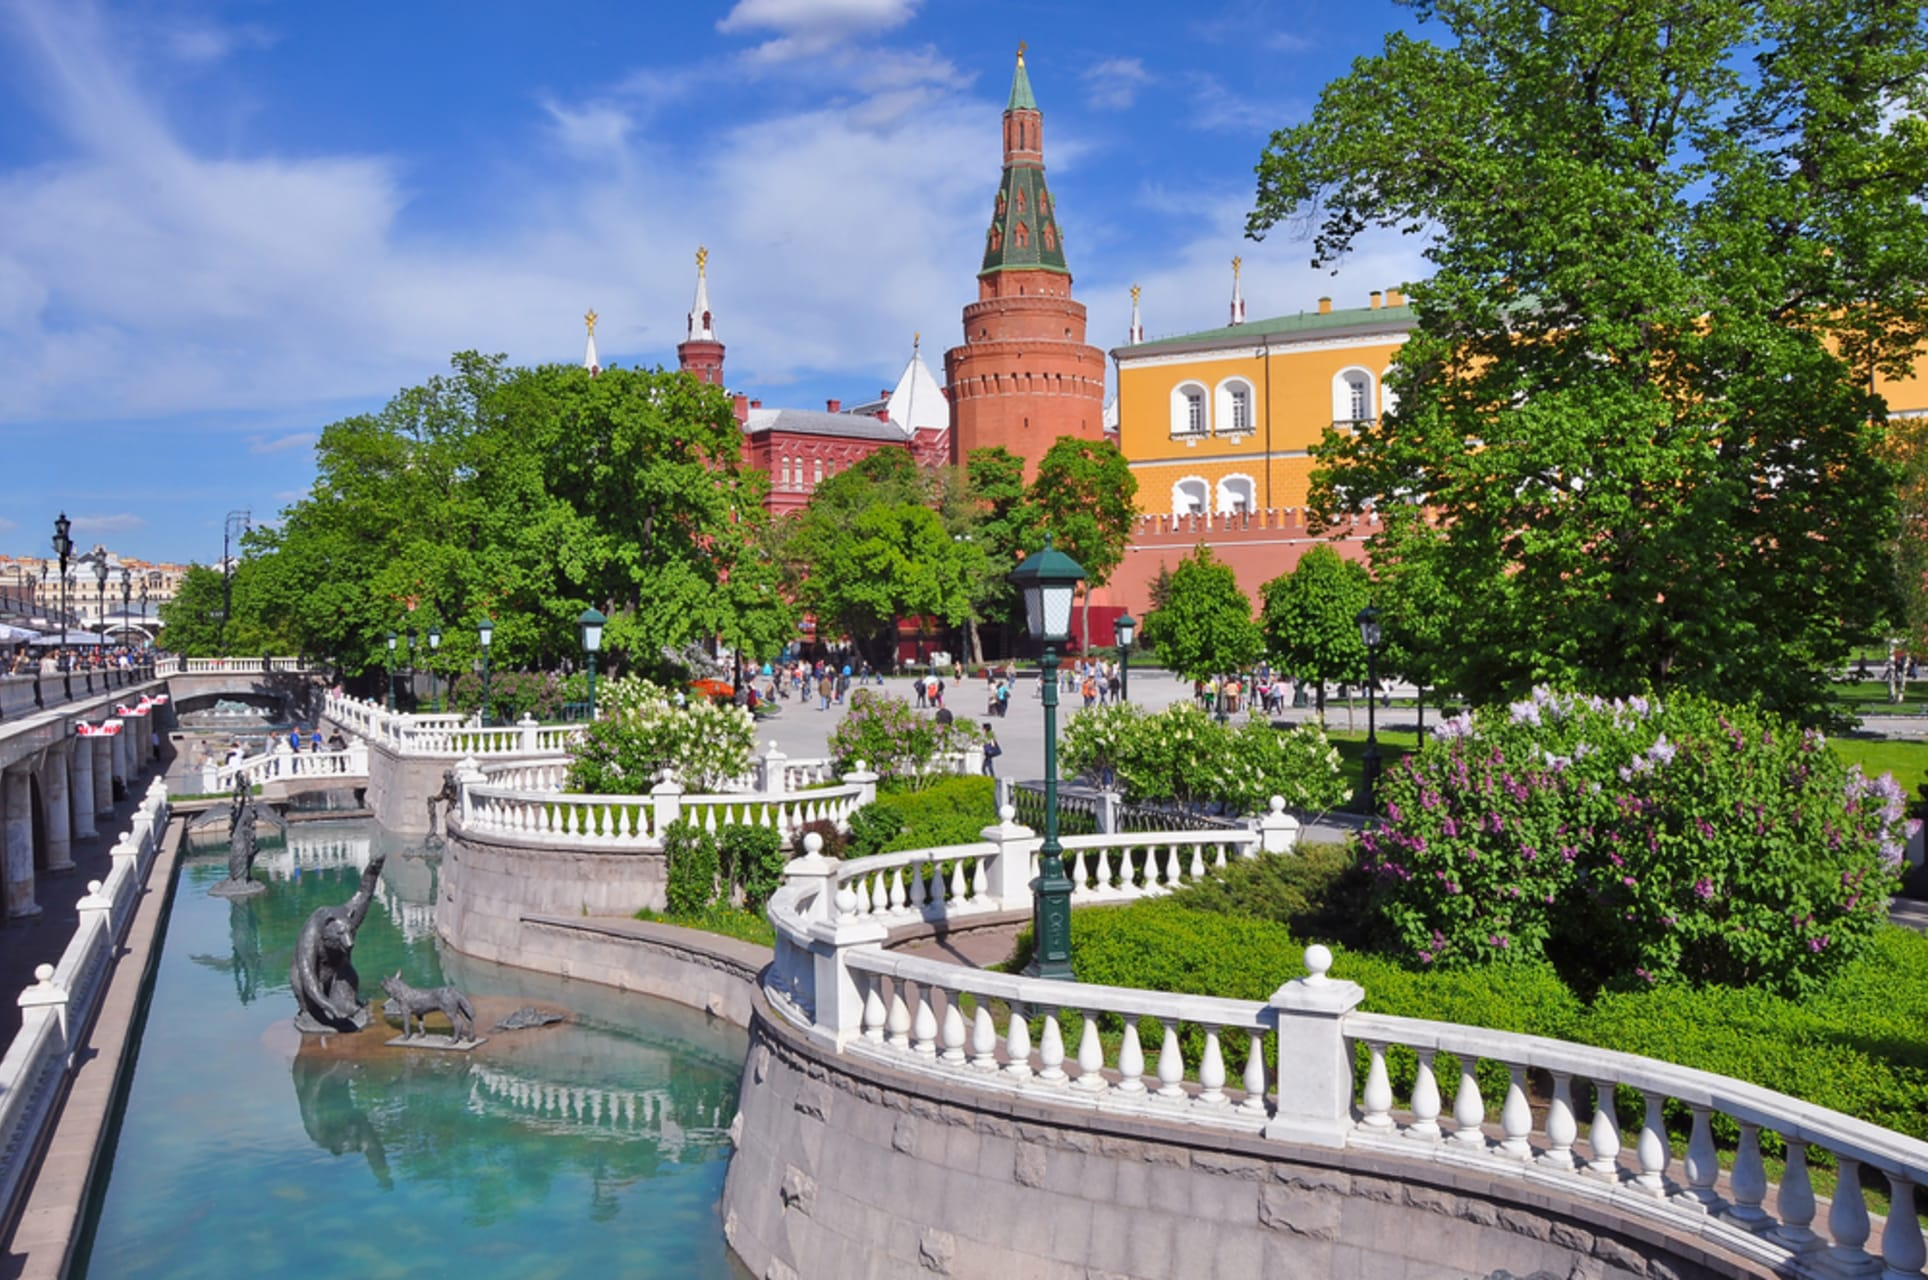 Moscow - Alexander Gardens and Kremlin Towers